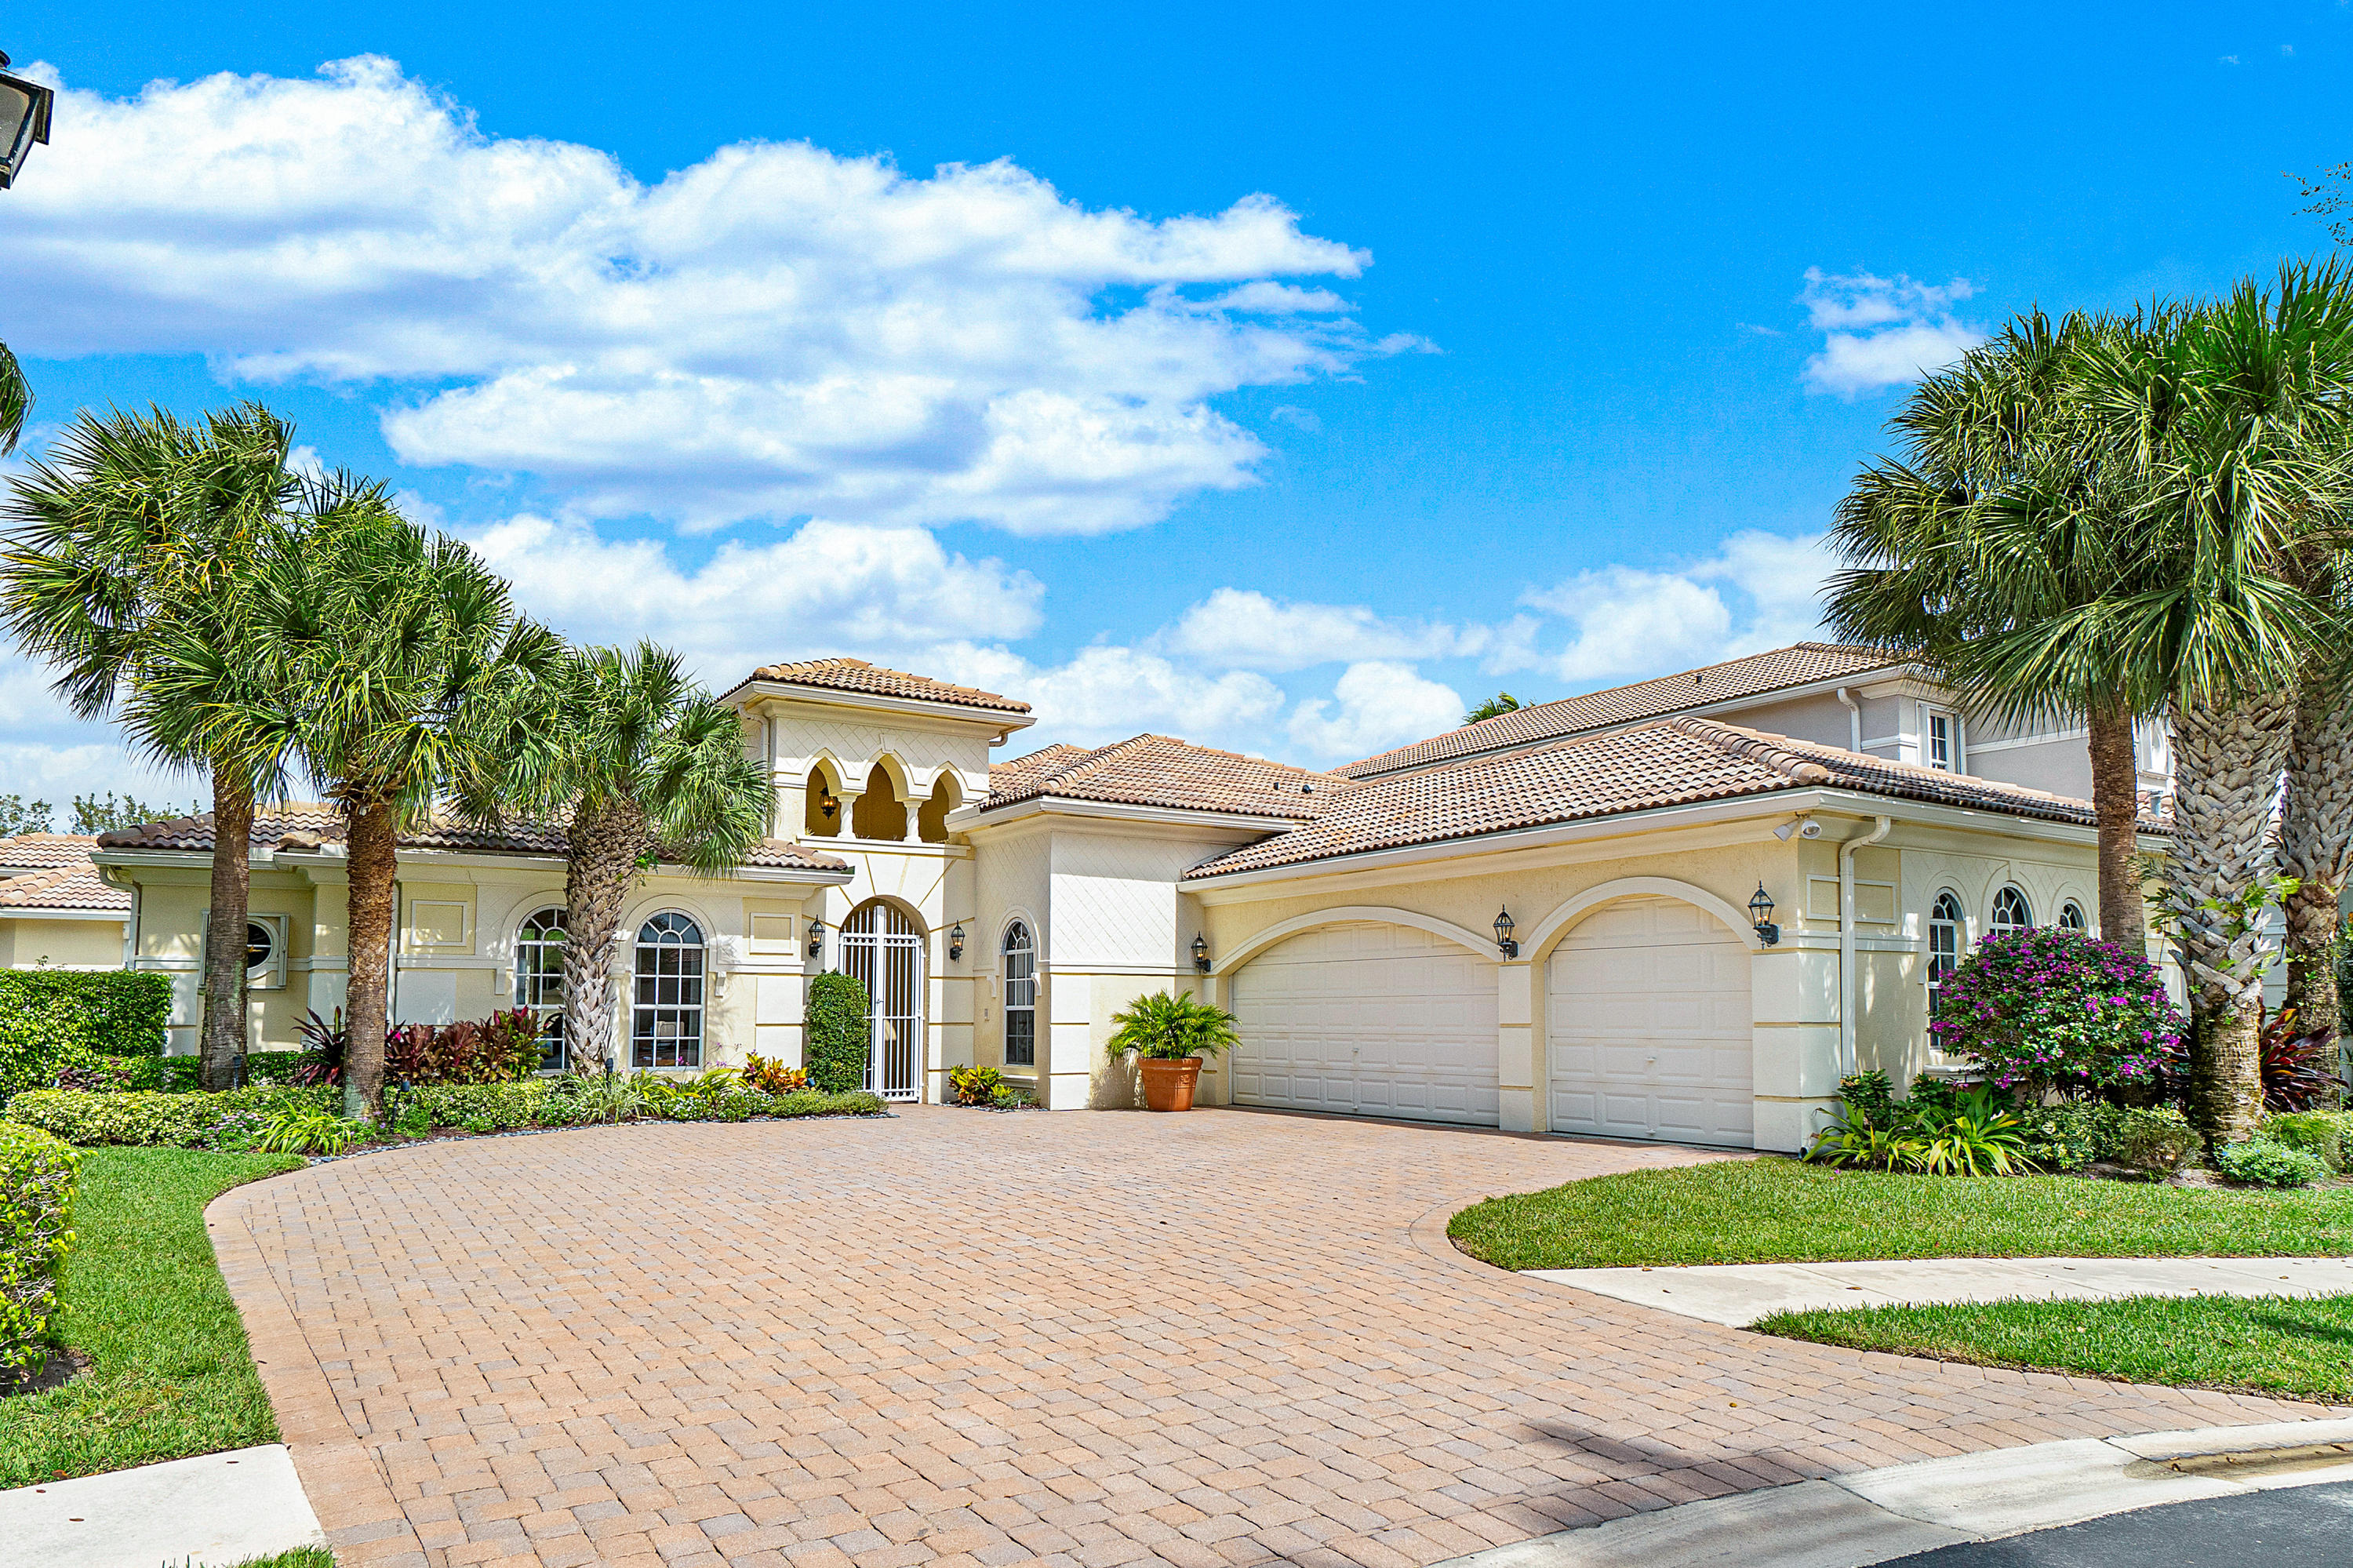 6453 Polo Pointe Way  Delray Beach, FL 33484